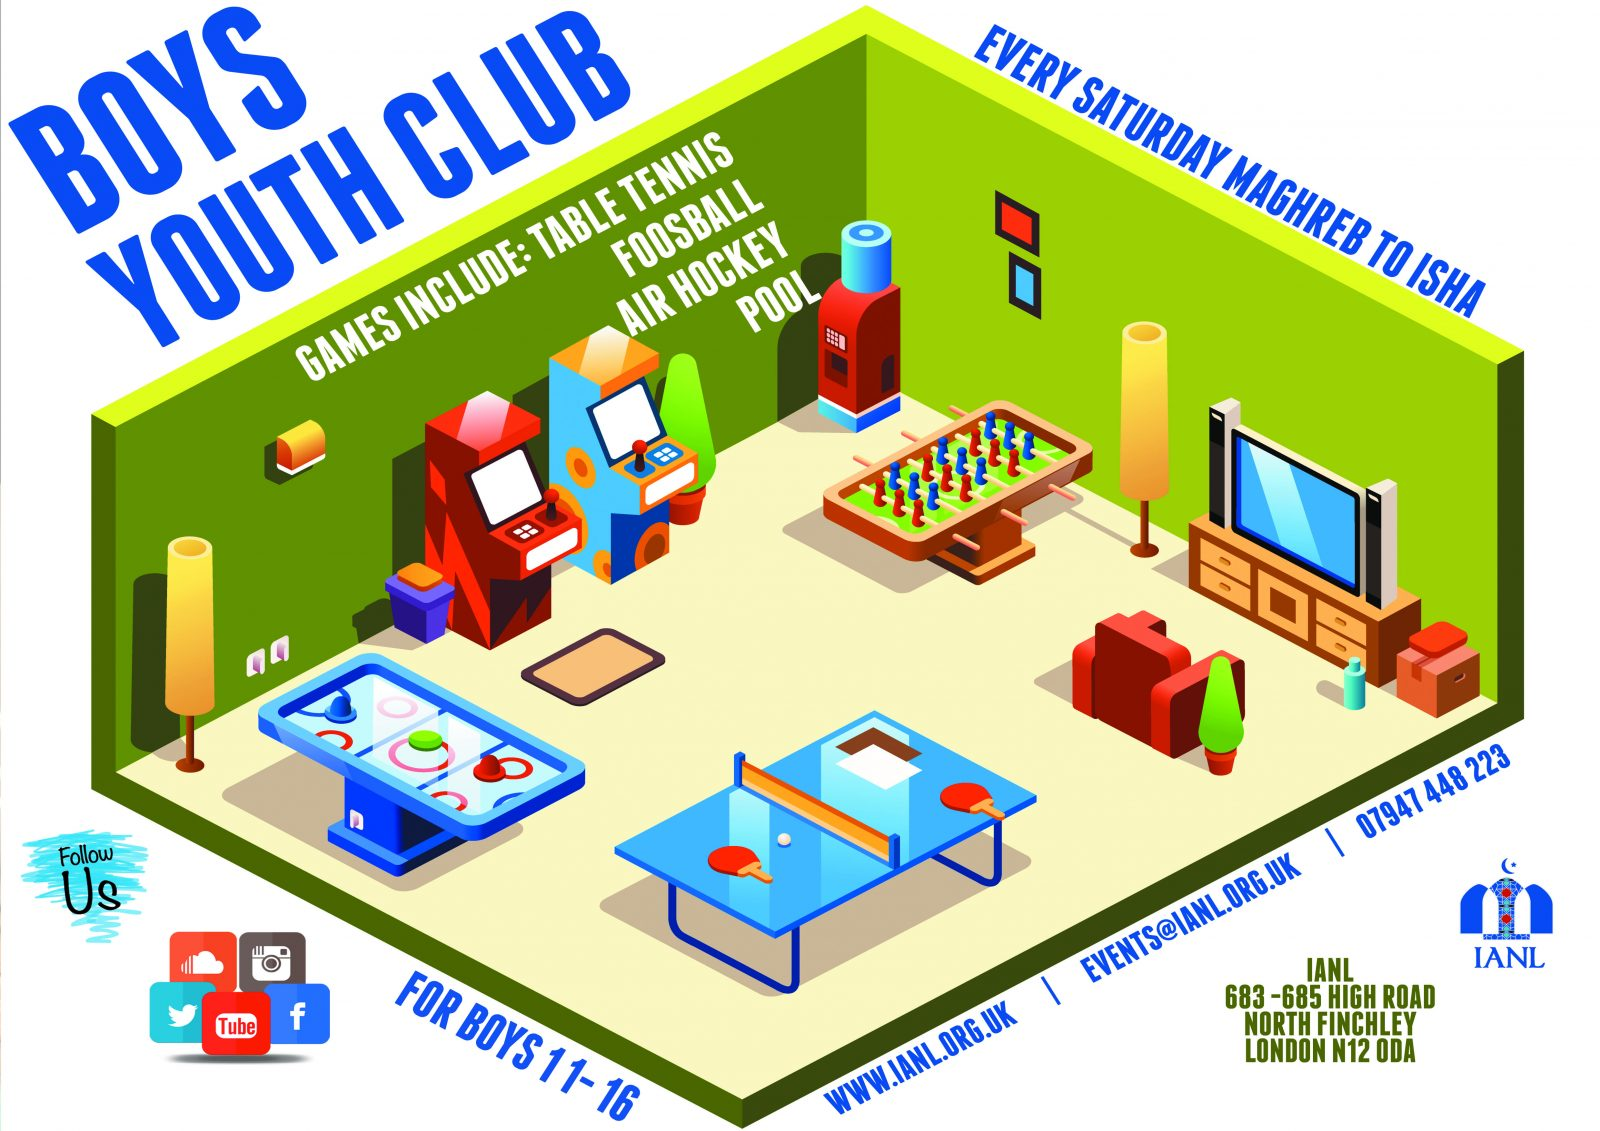 Boys Youth Club – Every Saturday